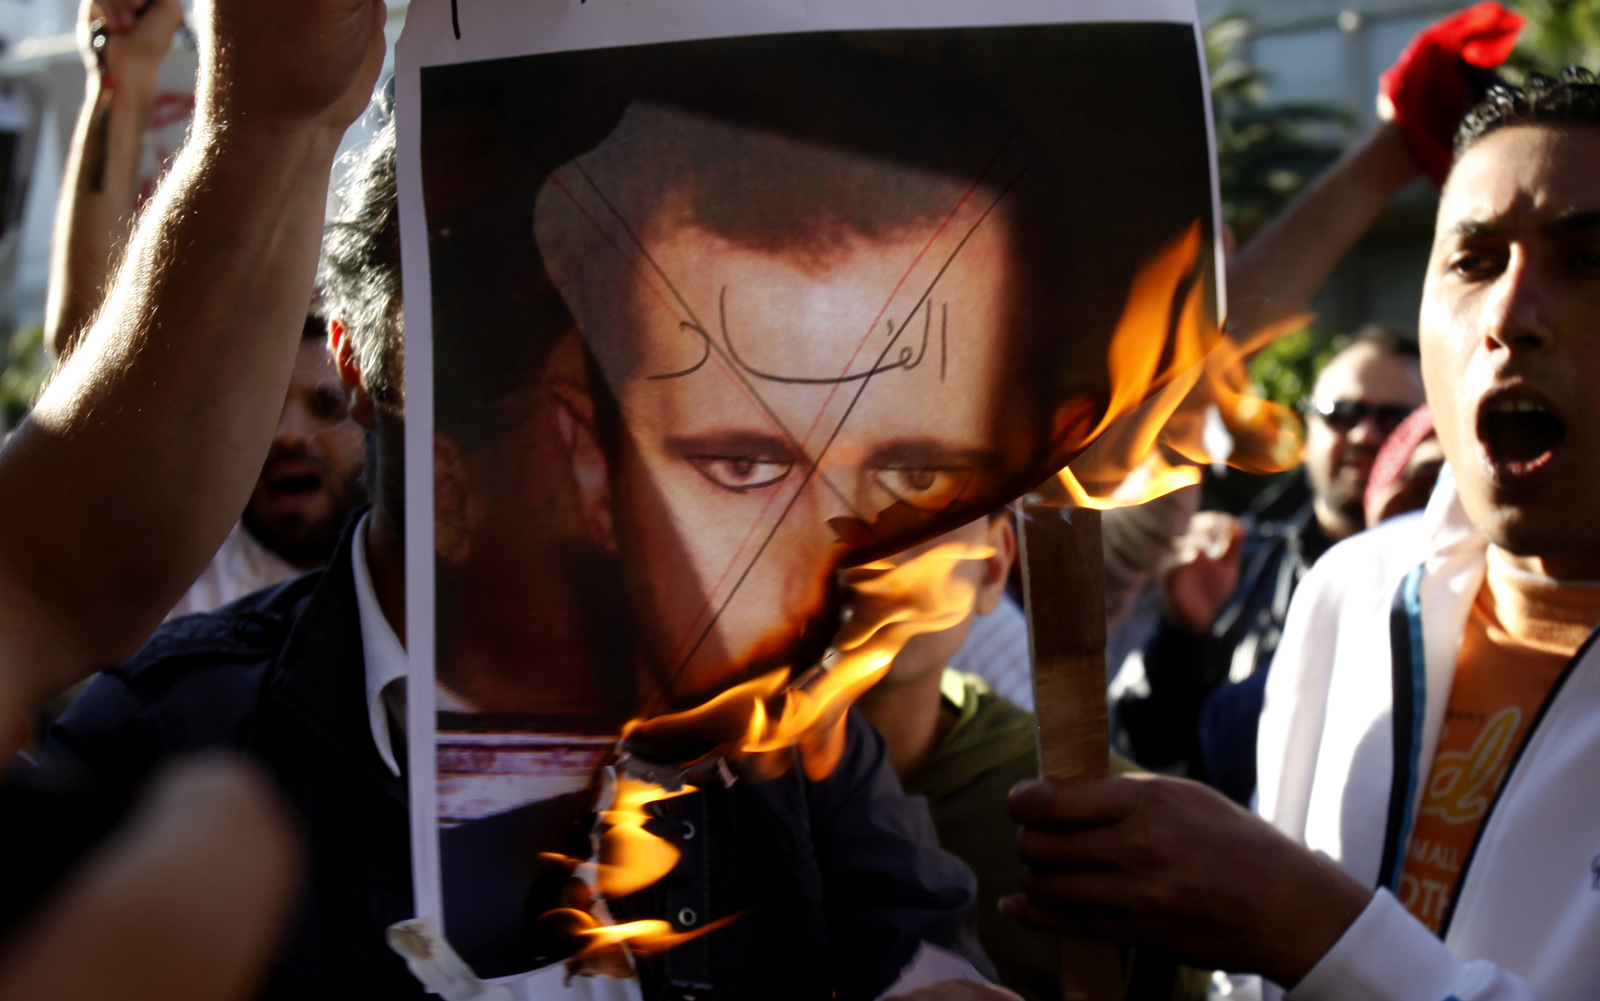 Anti-Assad protesters burn a picture of Syrian President Bashar al-Assad with 'Corruption' written across his face. (AP/Kostas Tsironis)